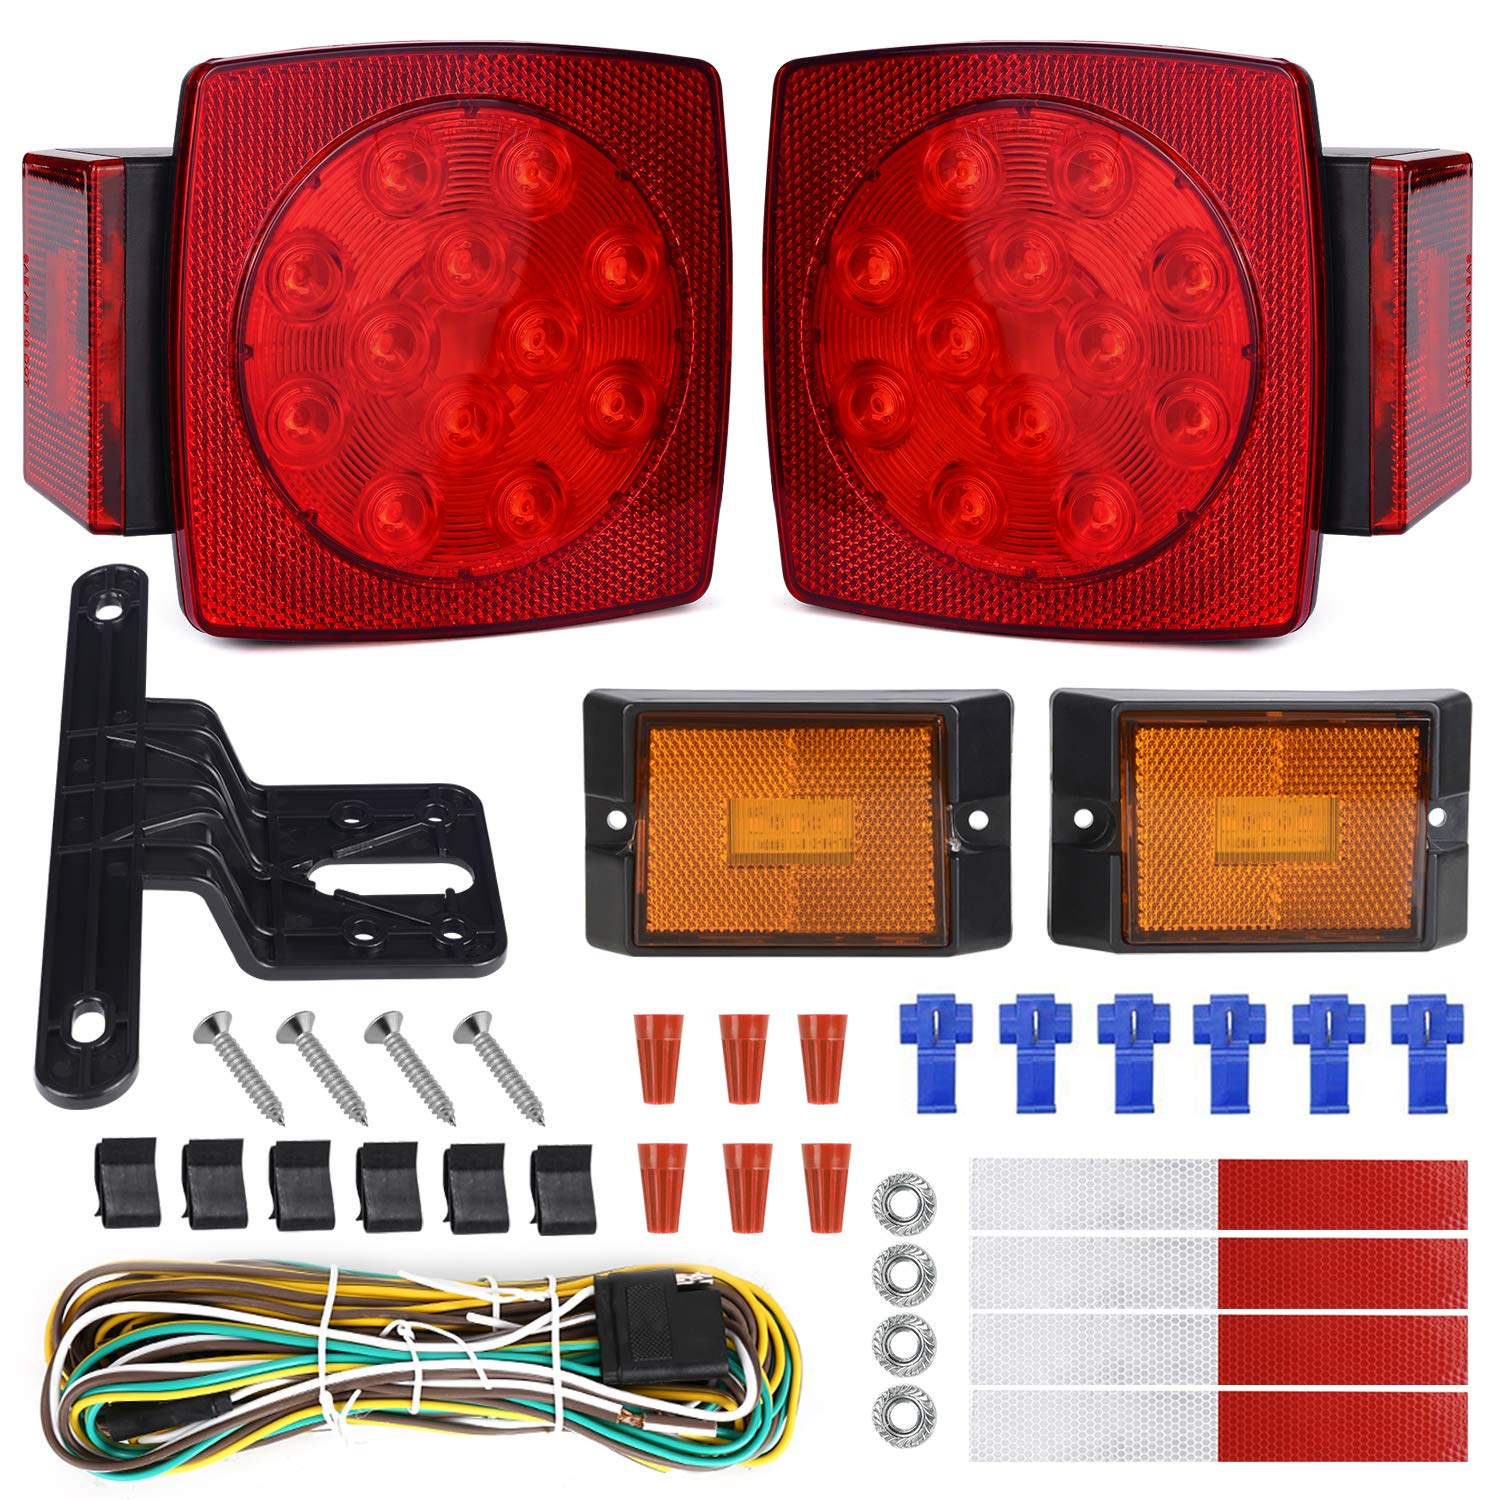 WoneNice LED Submersible Trailer Tail Light Kit, Combined Stop, Taillights, Turn Function, DOT Compliance, IP67 Waterproof and Fully-Submersible by WoneNice